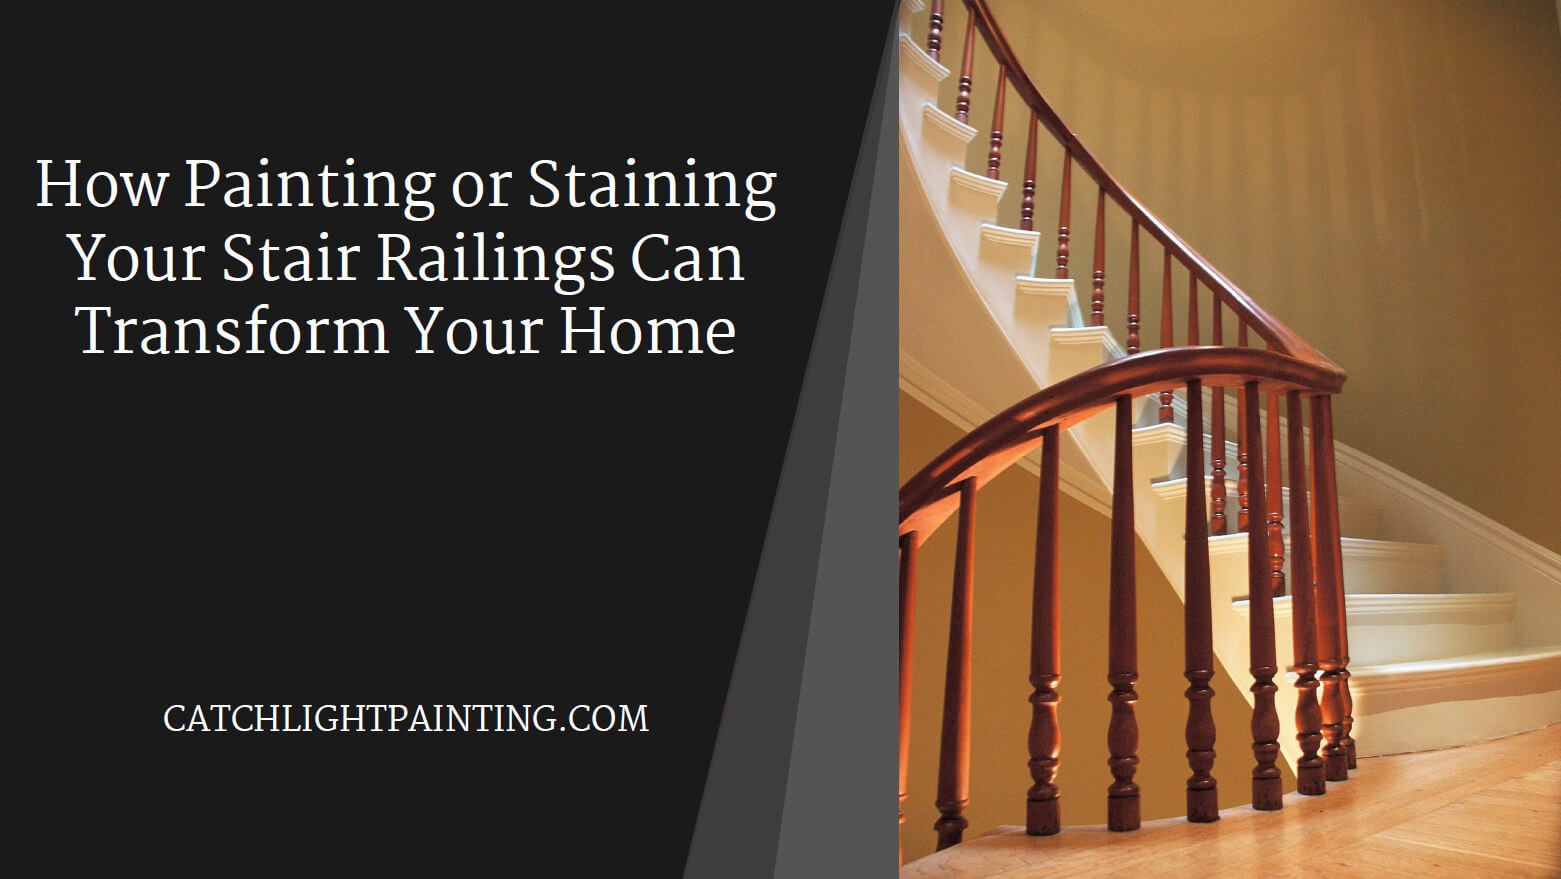 How Painting or Staining Your Stair Railings Can Transform Your Home